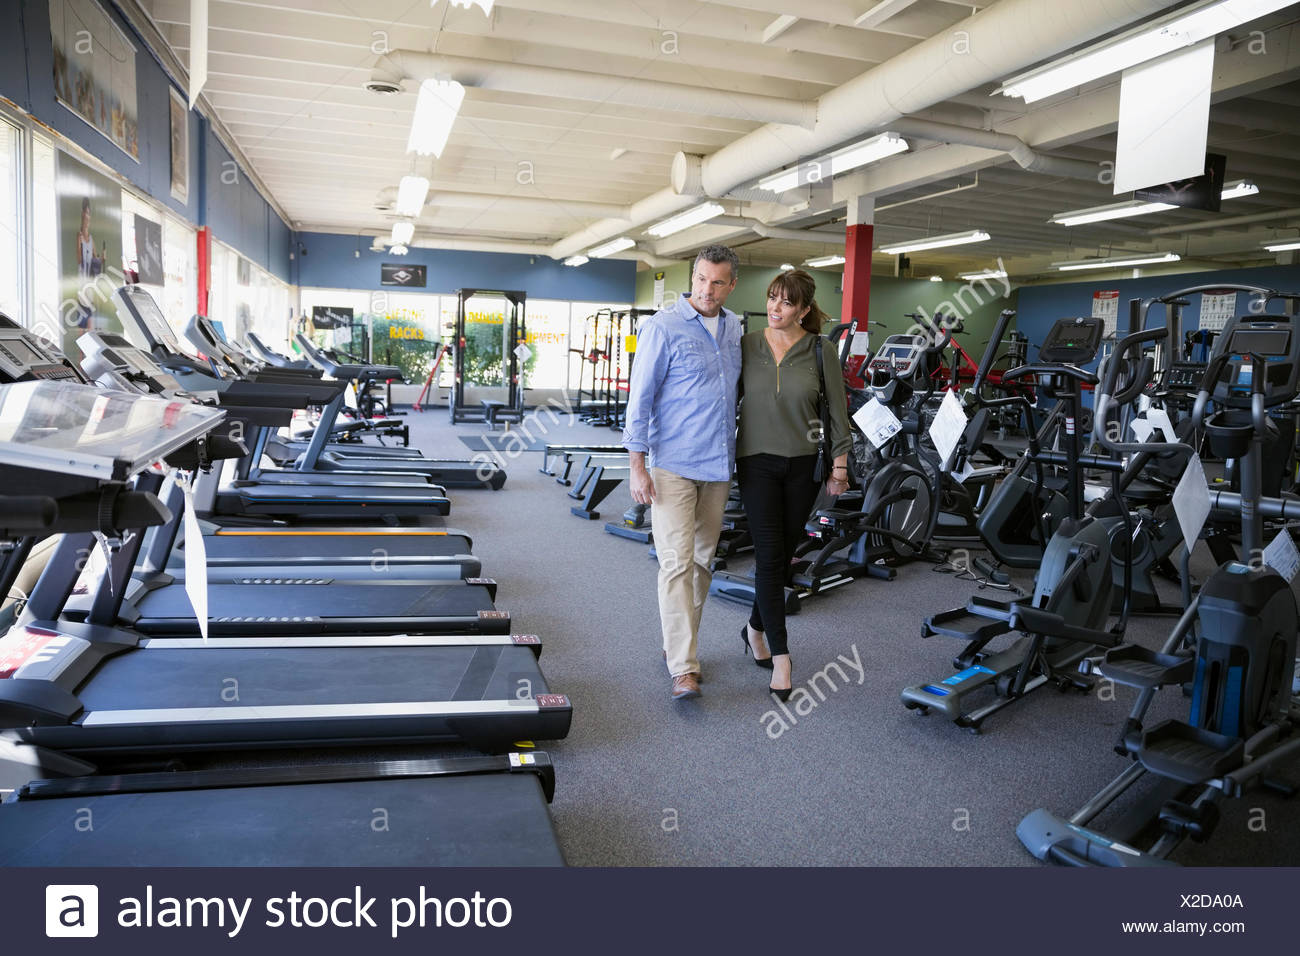 Couple browsing cardio machines in home gym equipment store stock